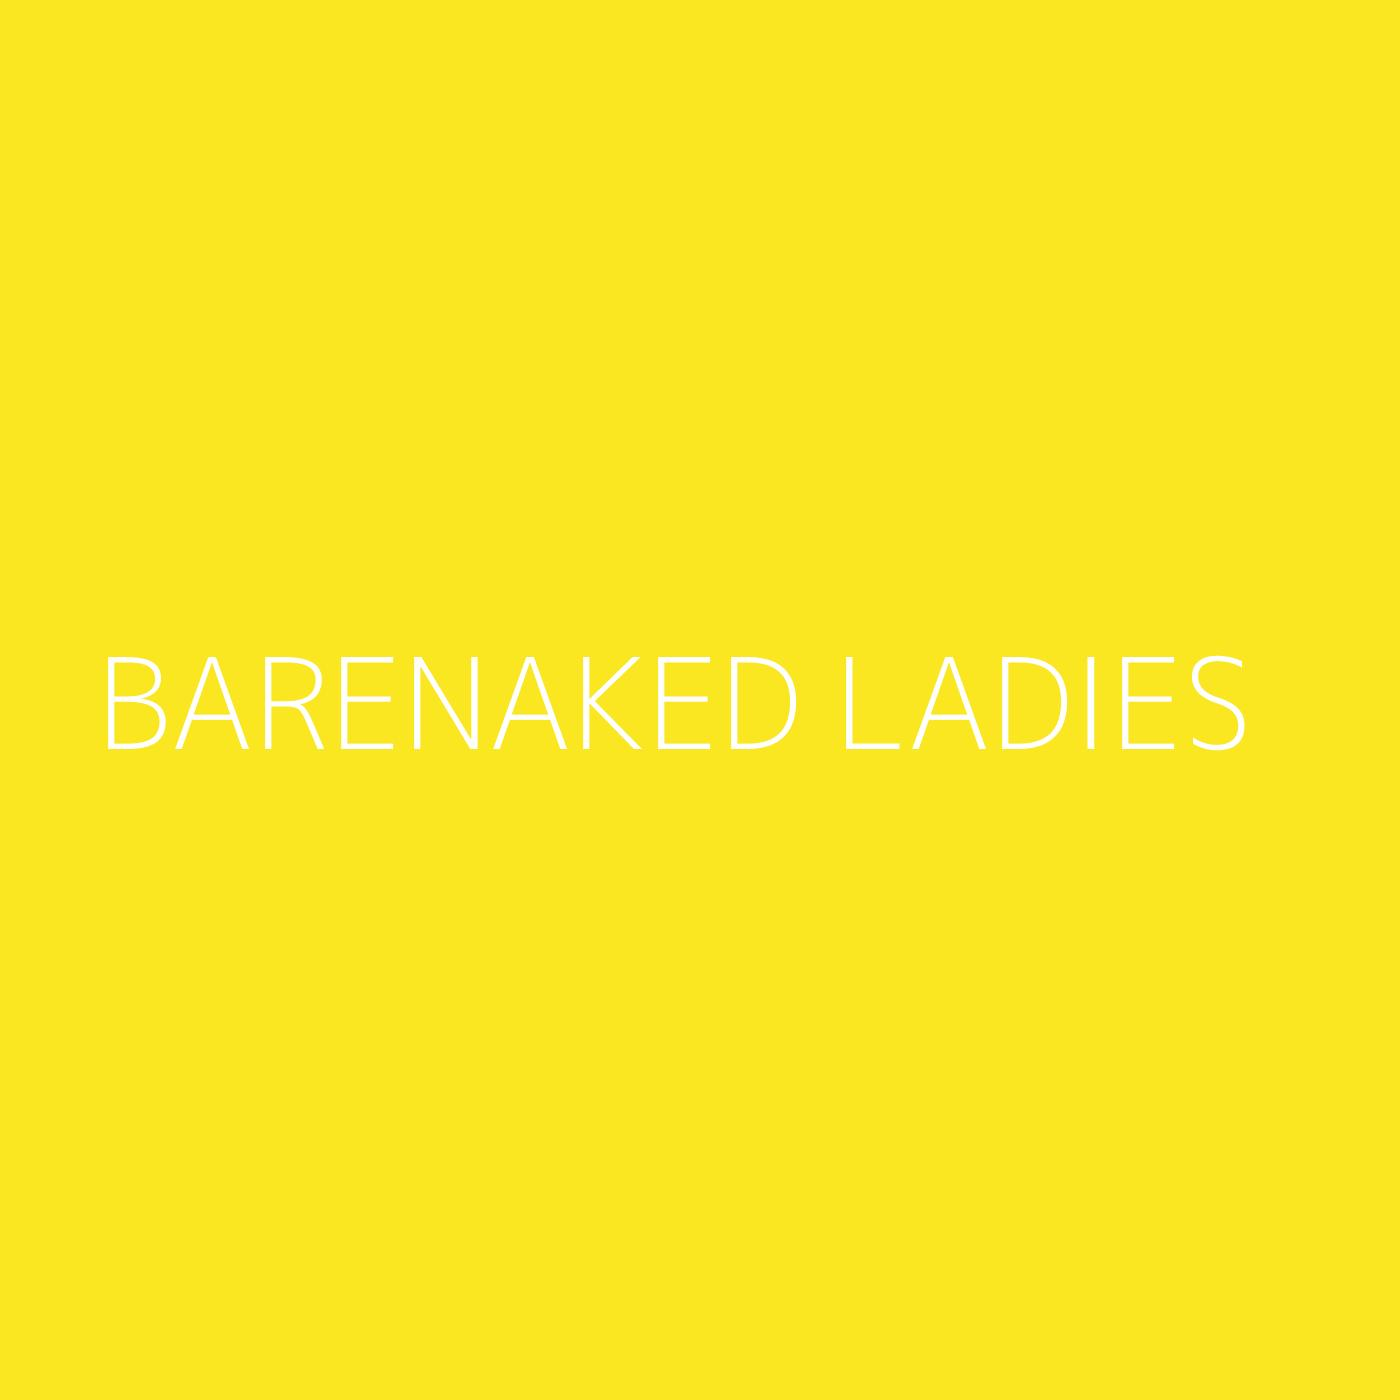 Barenaked Ladies Playlist Artwork